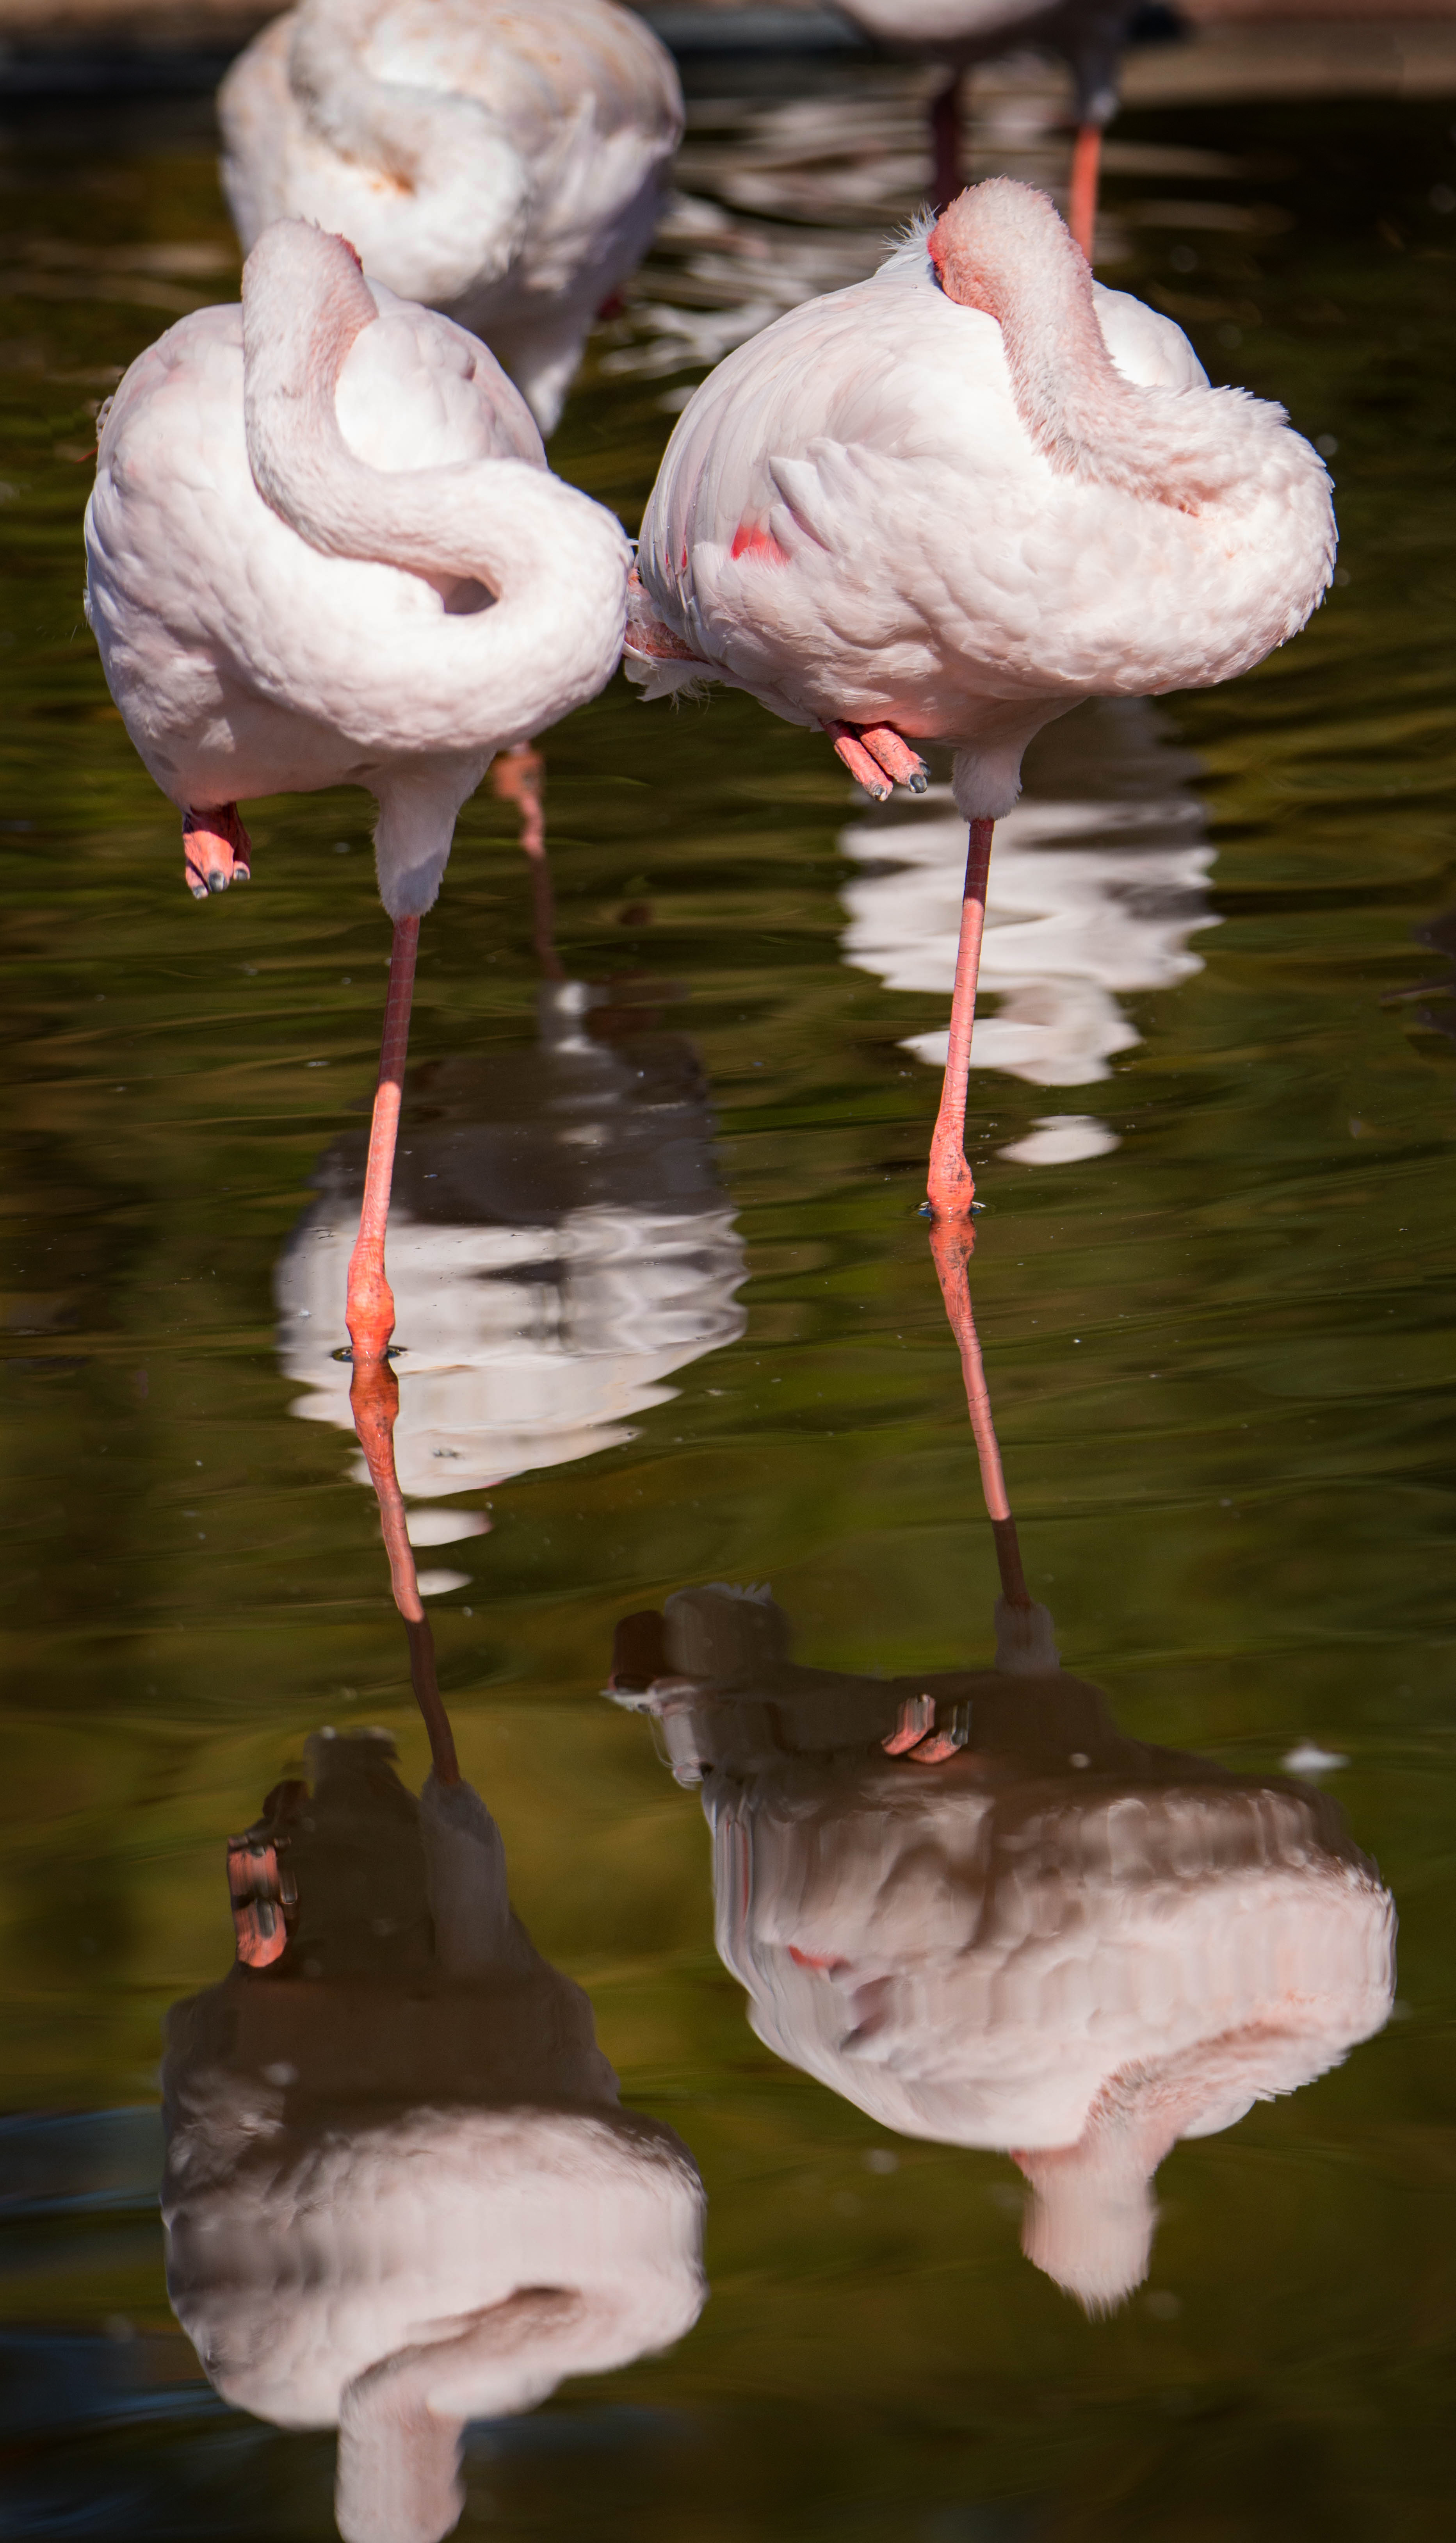 #sleeping, #rainydays, #mondays, #tired, #reflection, #flamingo, #sandiego, #safaripark